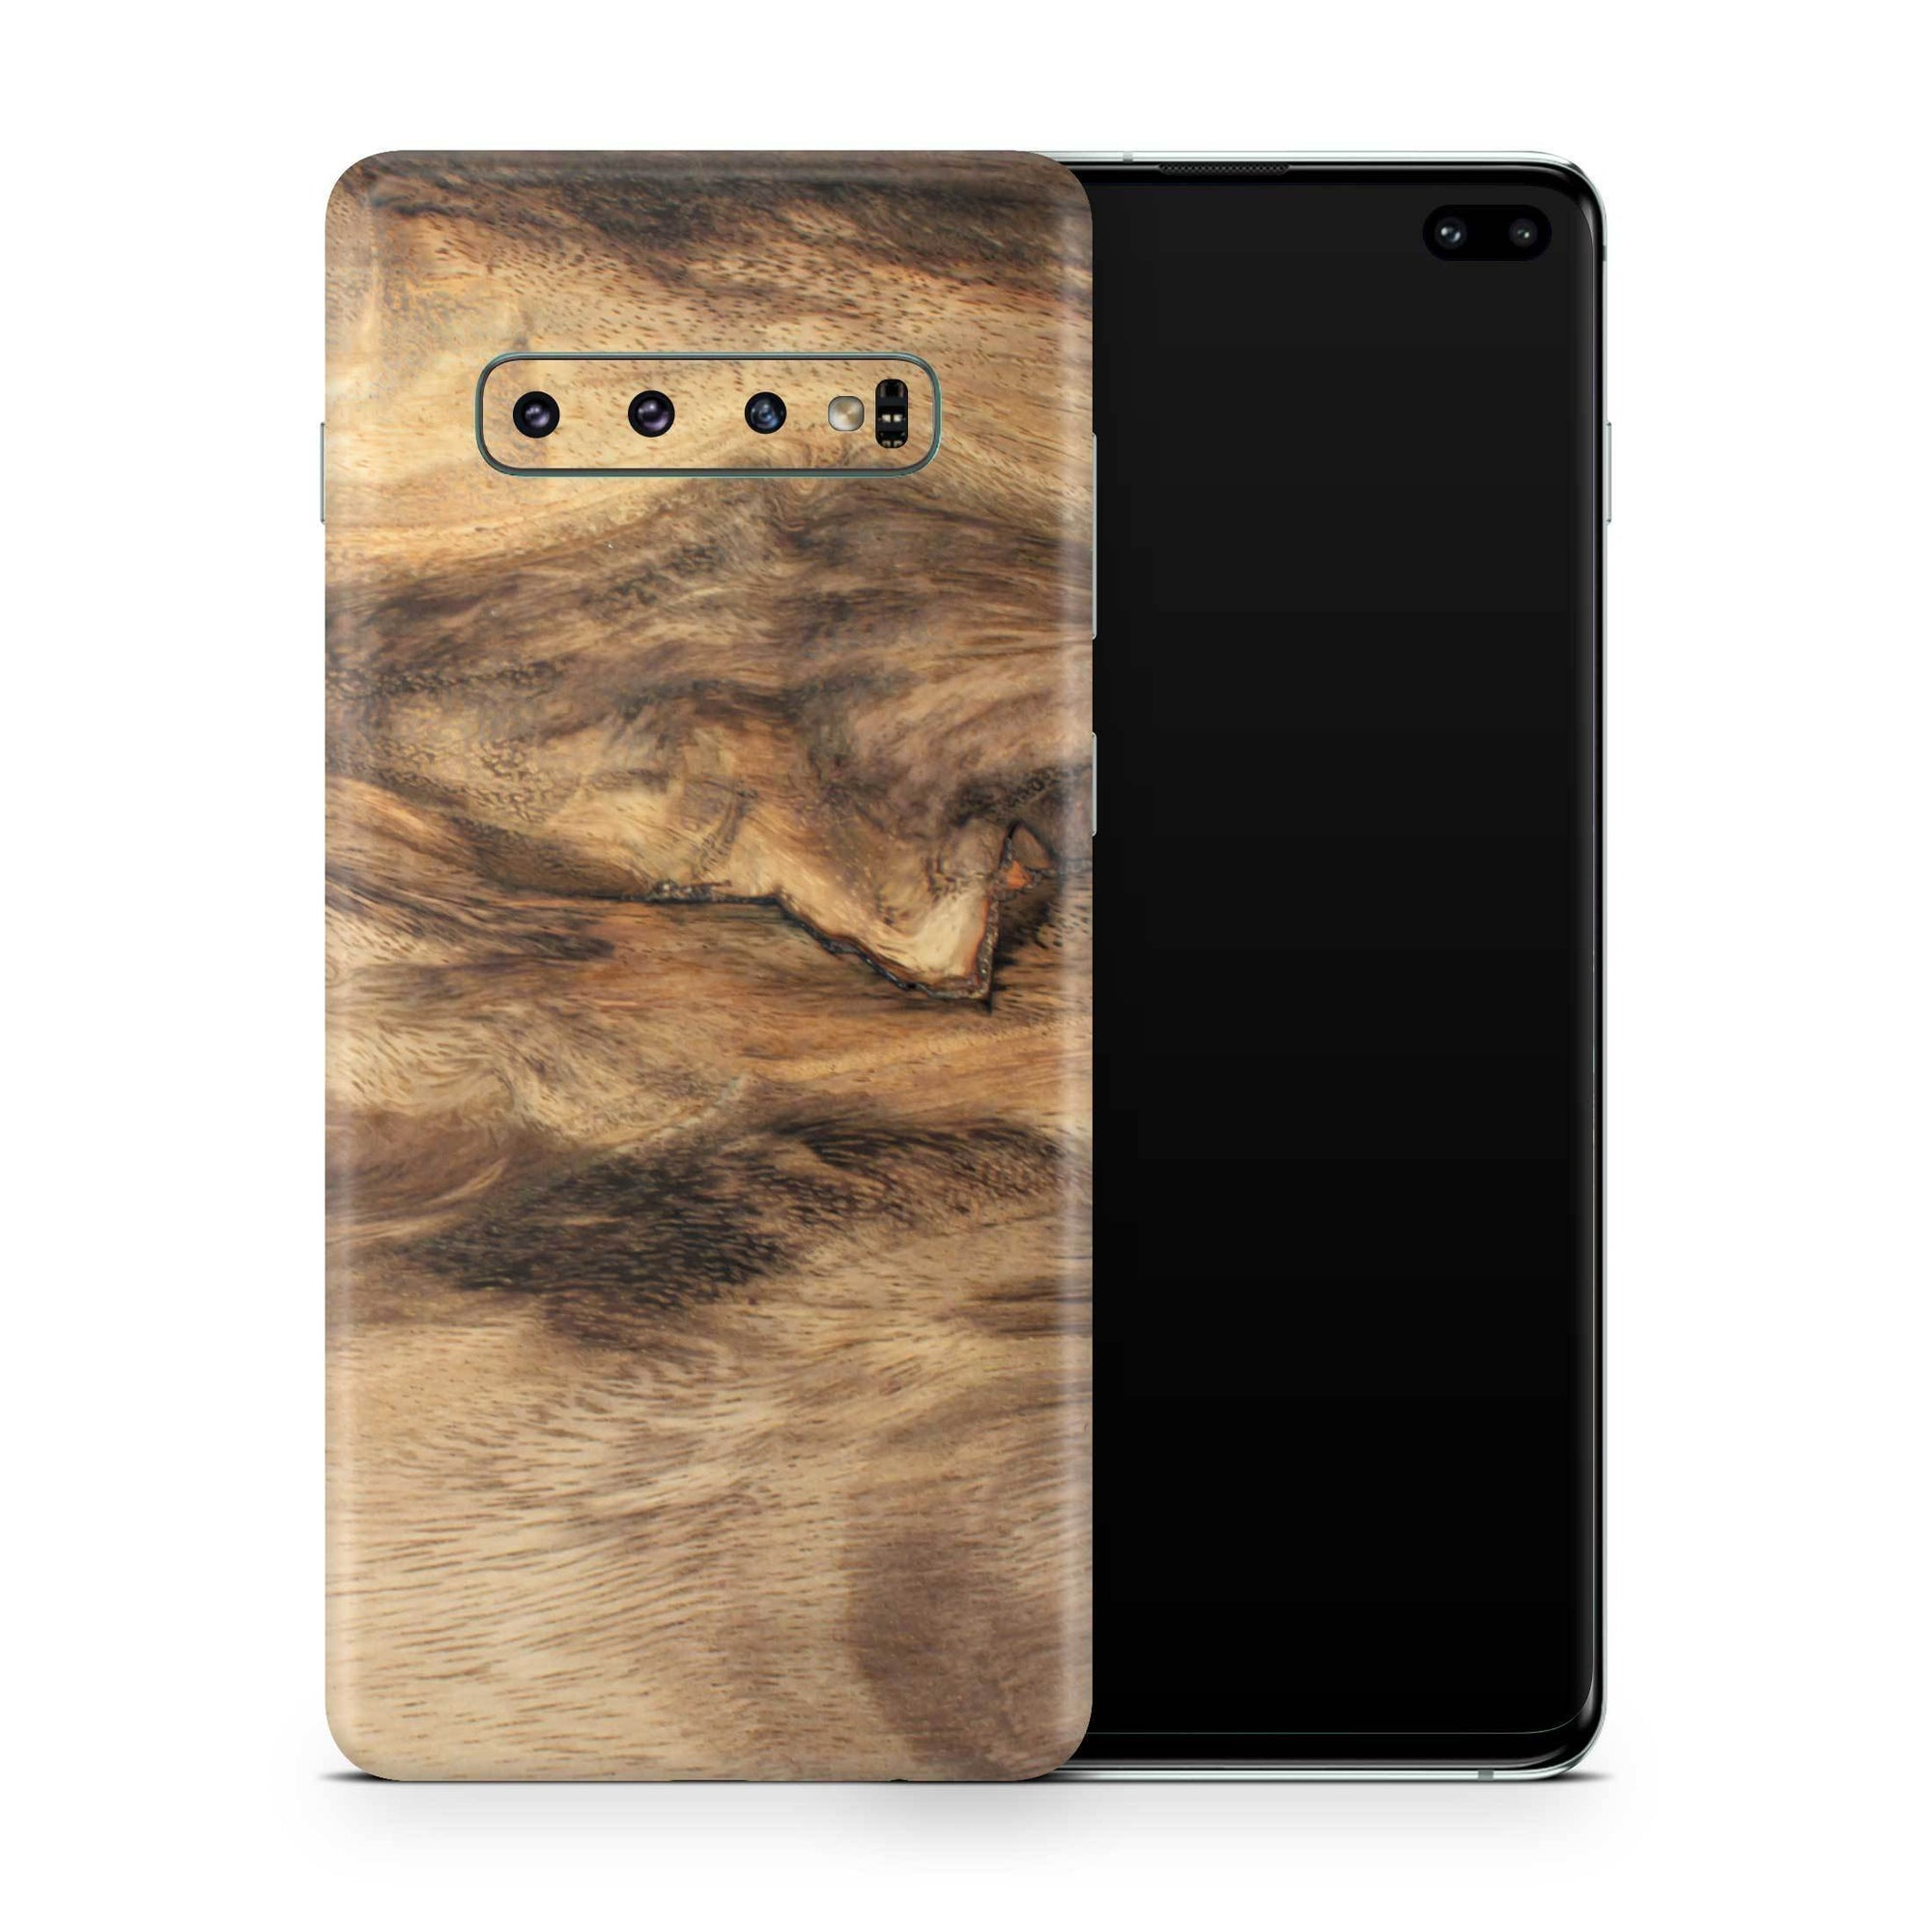 Wood Galaxy S10e Skin + Case